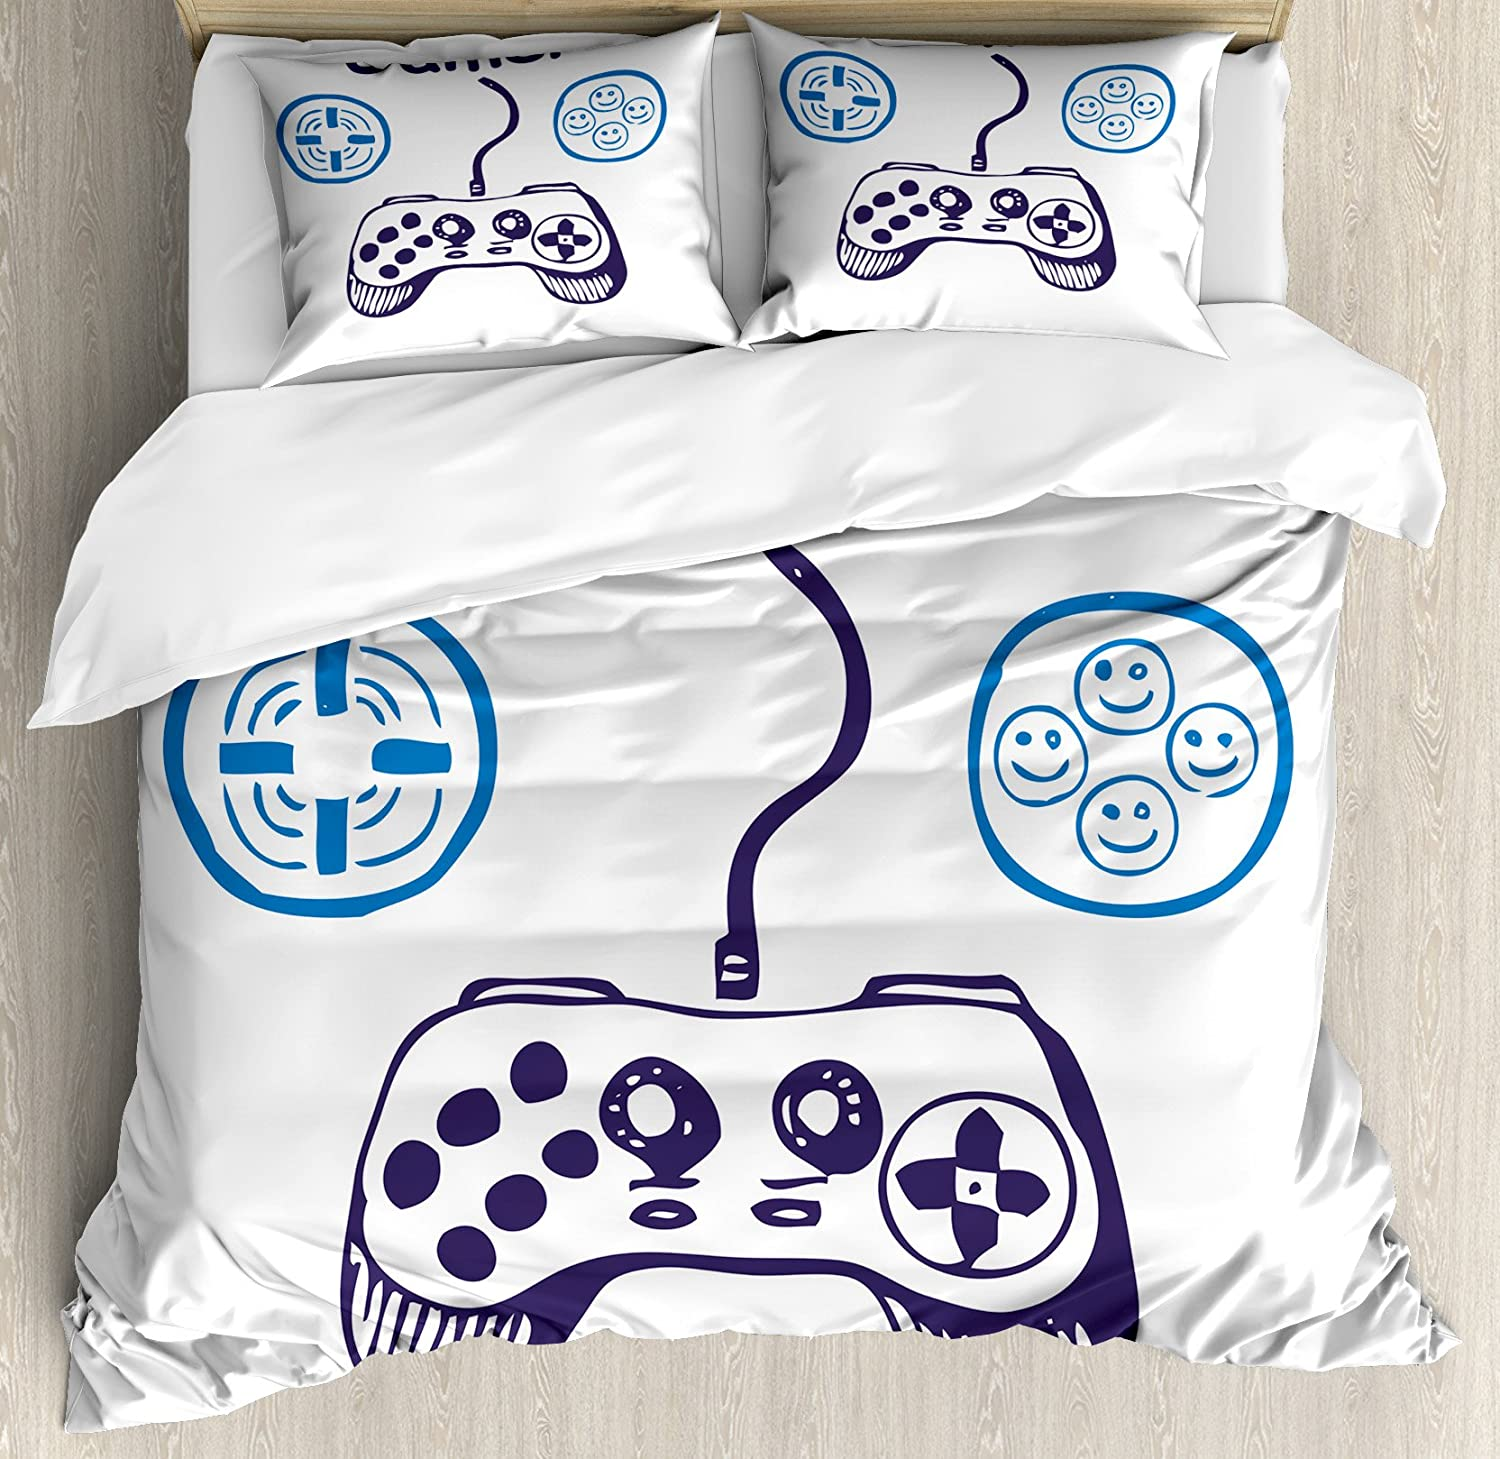 Lunarable Gamer Duvet Cover Set, Sketch of Videogame Controller with D-Pad and Smiling Buttons Design, Decorative 3 Piece Bedding Set with 2 Pillow Shams, Queen Size, Azure Blue